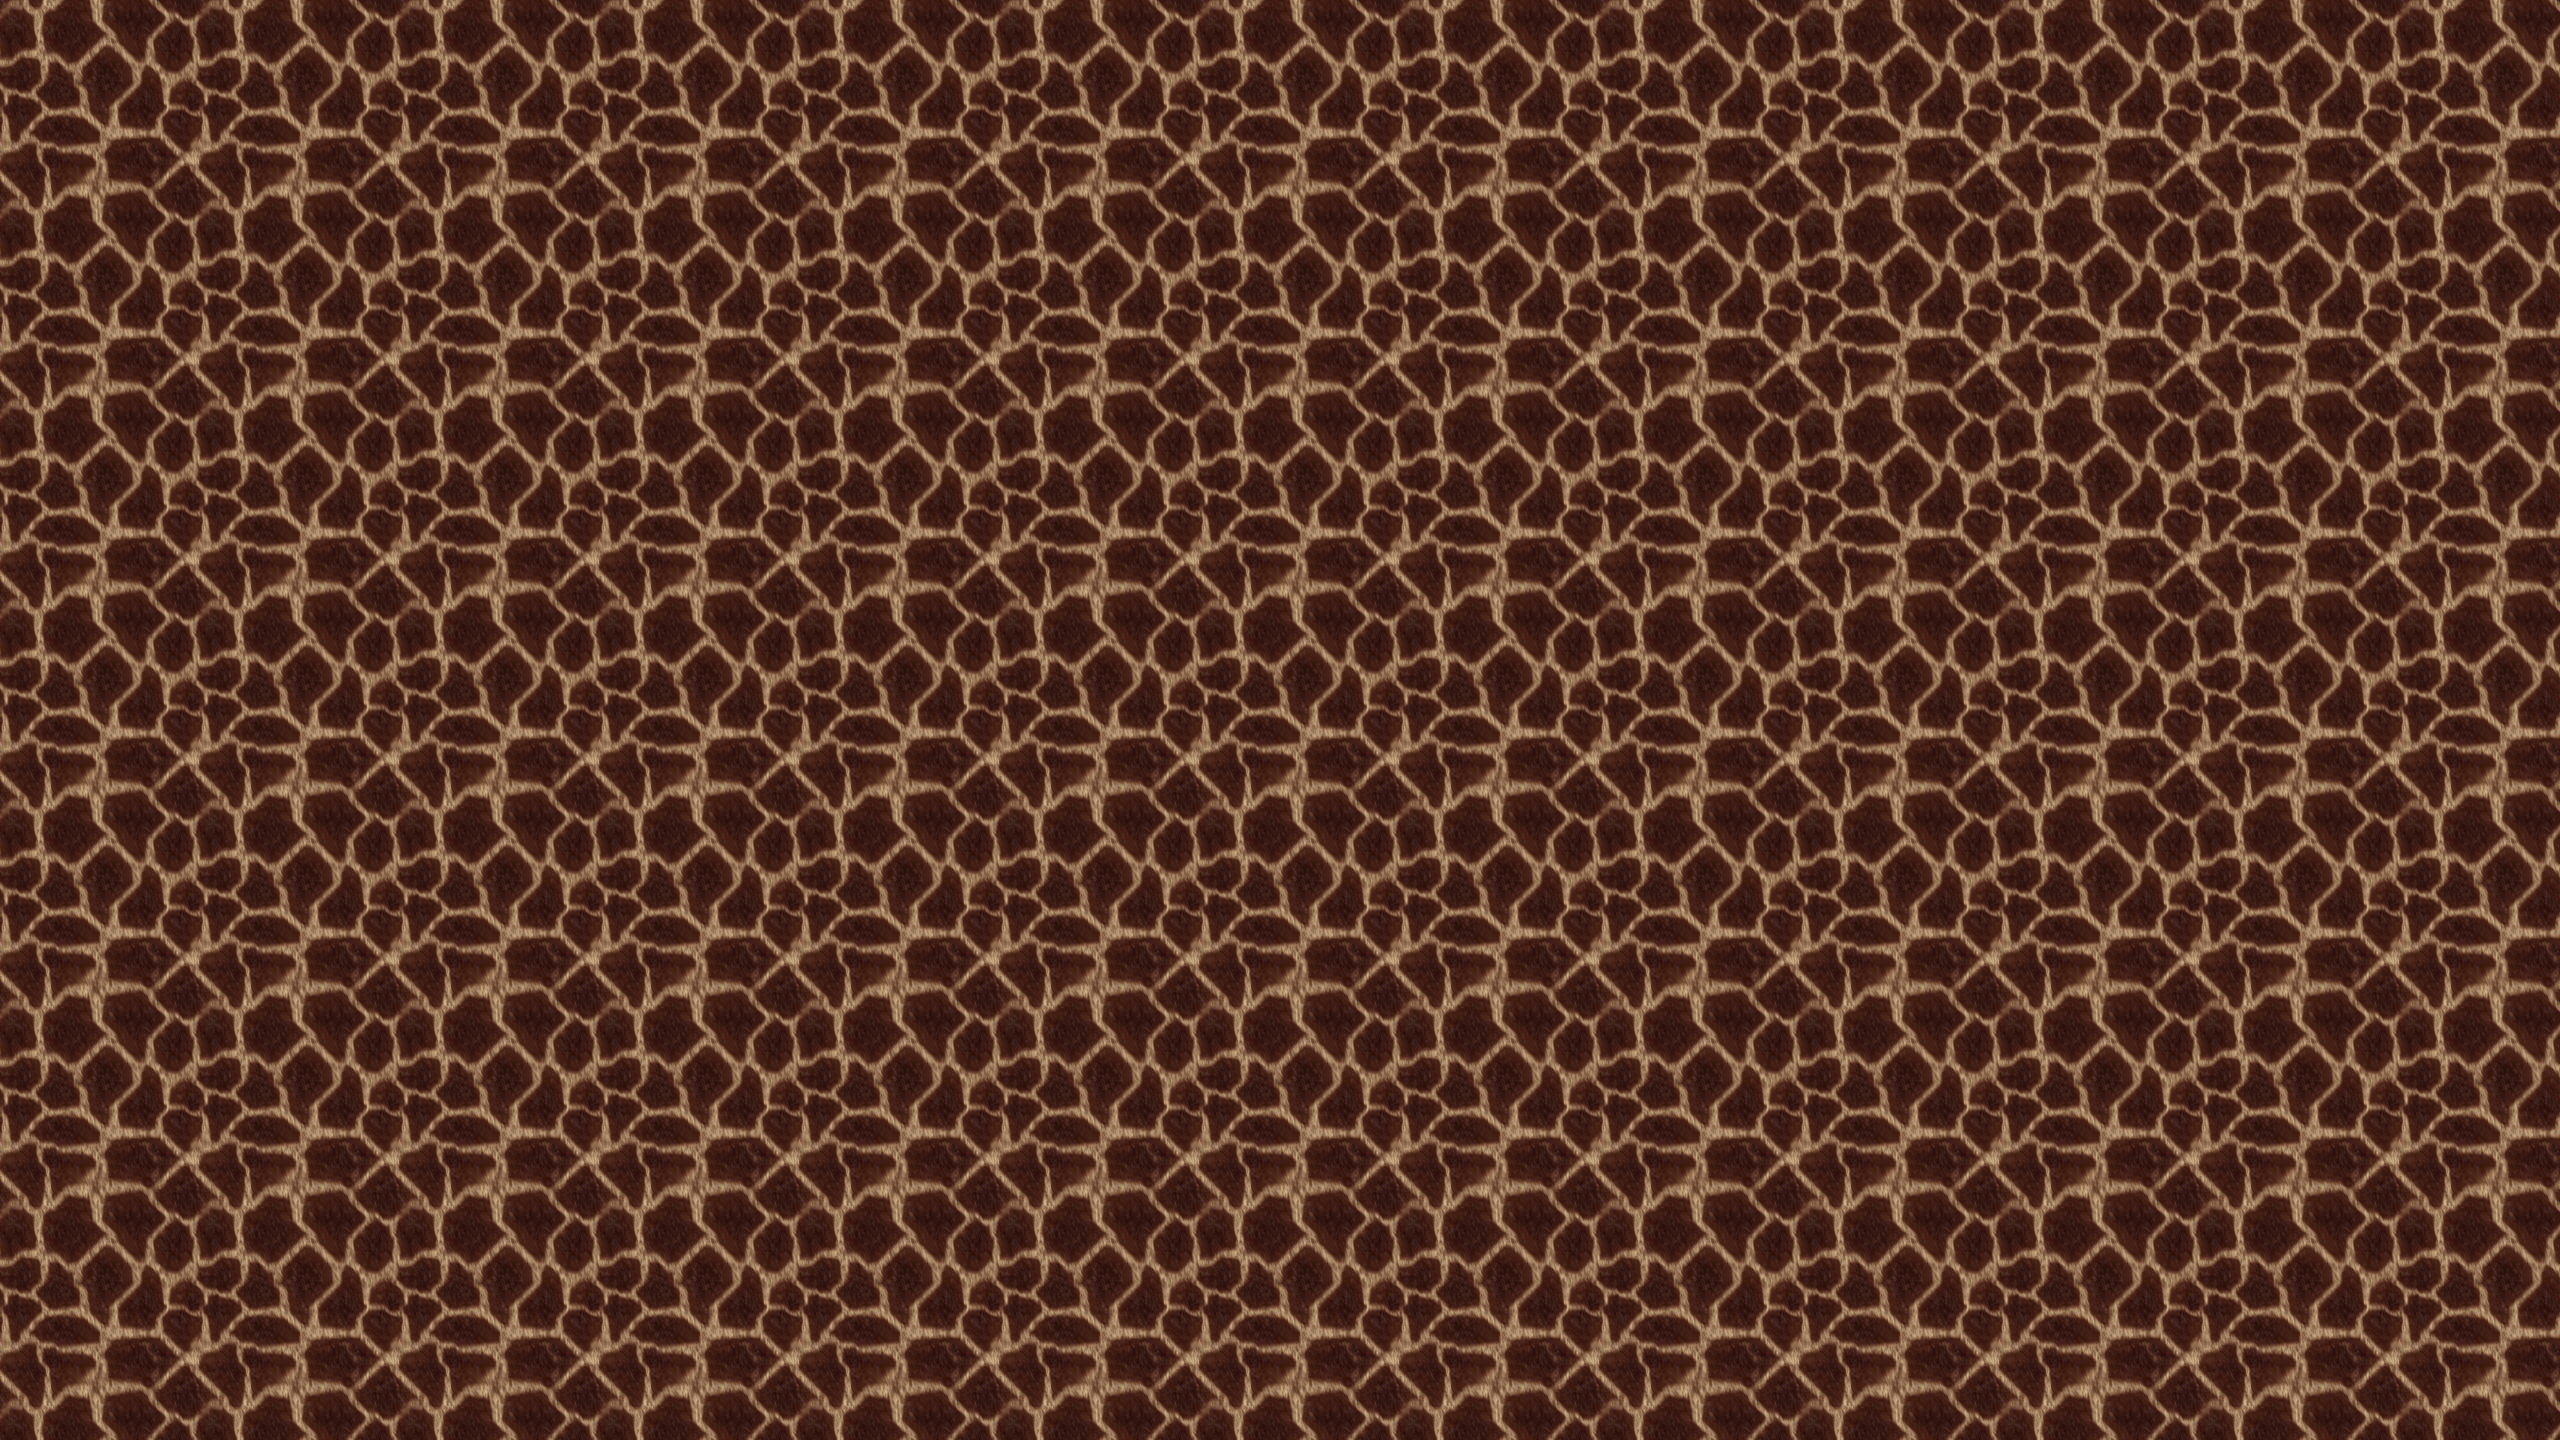 Animal Print Desktop Wallpaper is easy Just save the wallpaper 2560x1440